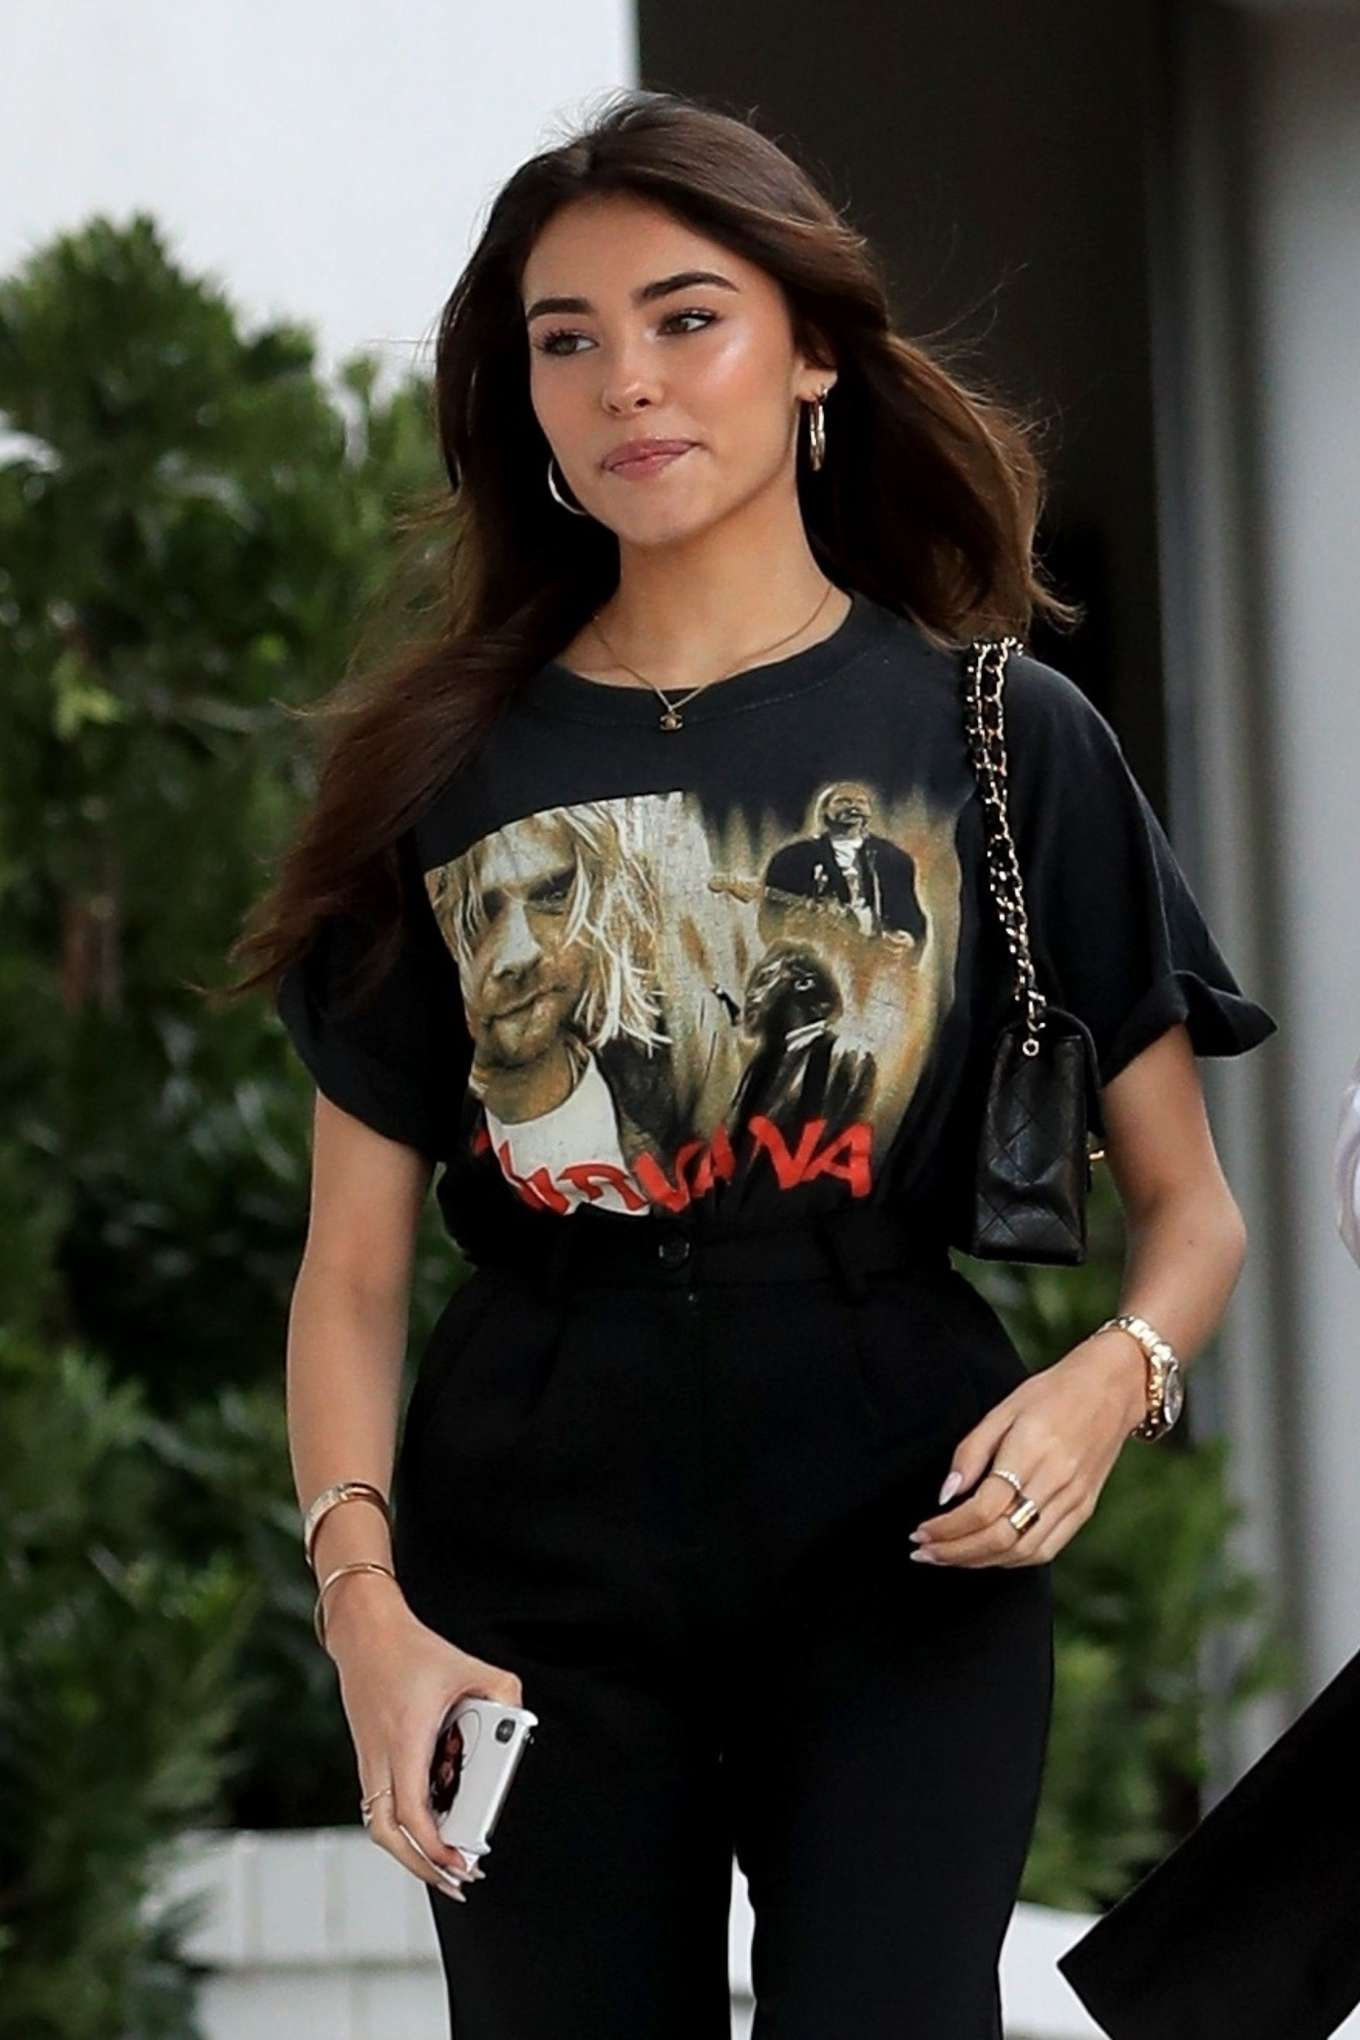 Madison Beer - Seen after a meeting alongside her publicist in West Hollywood